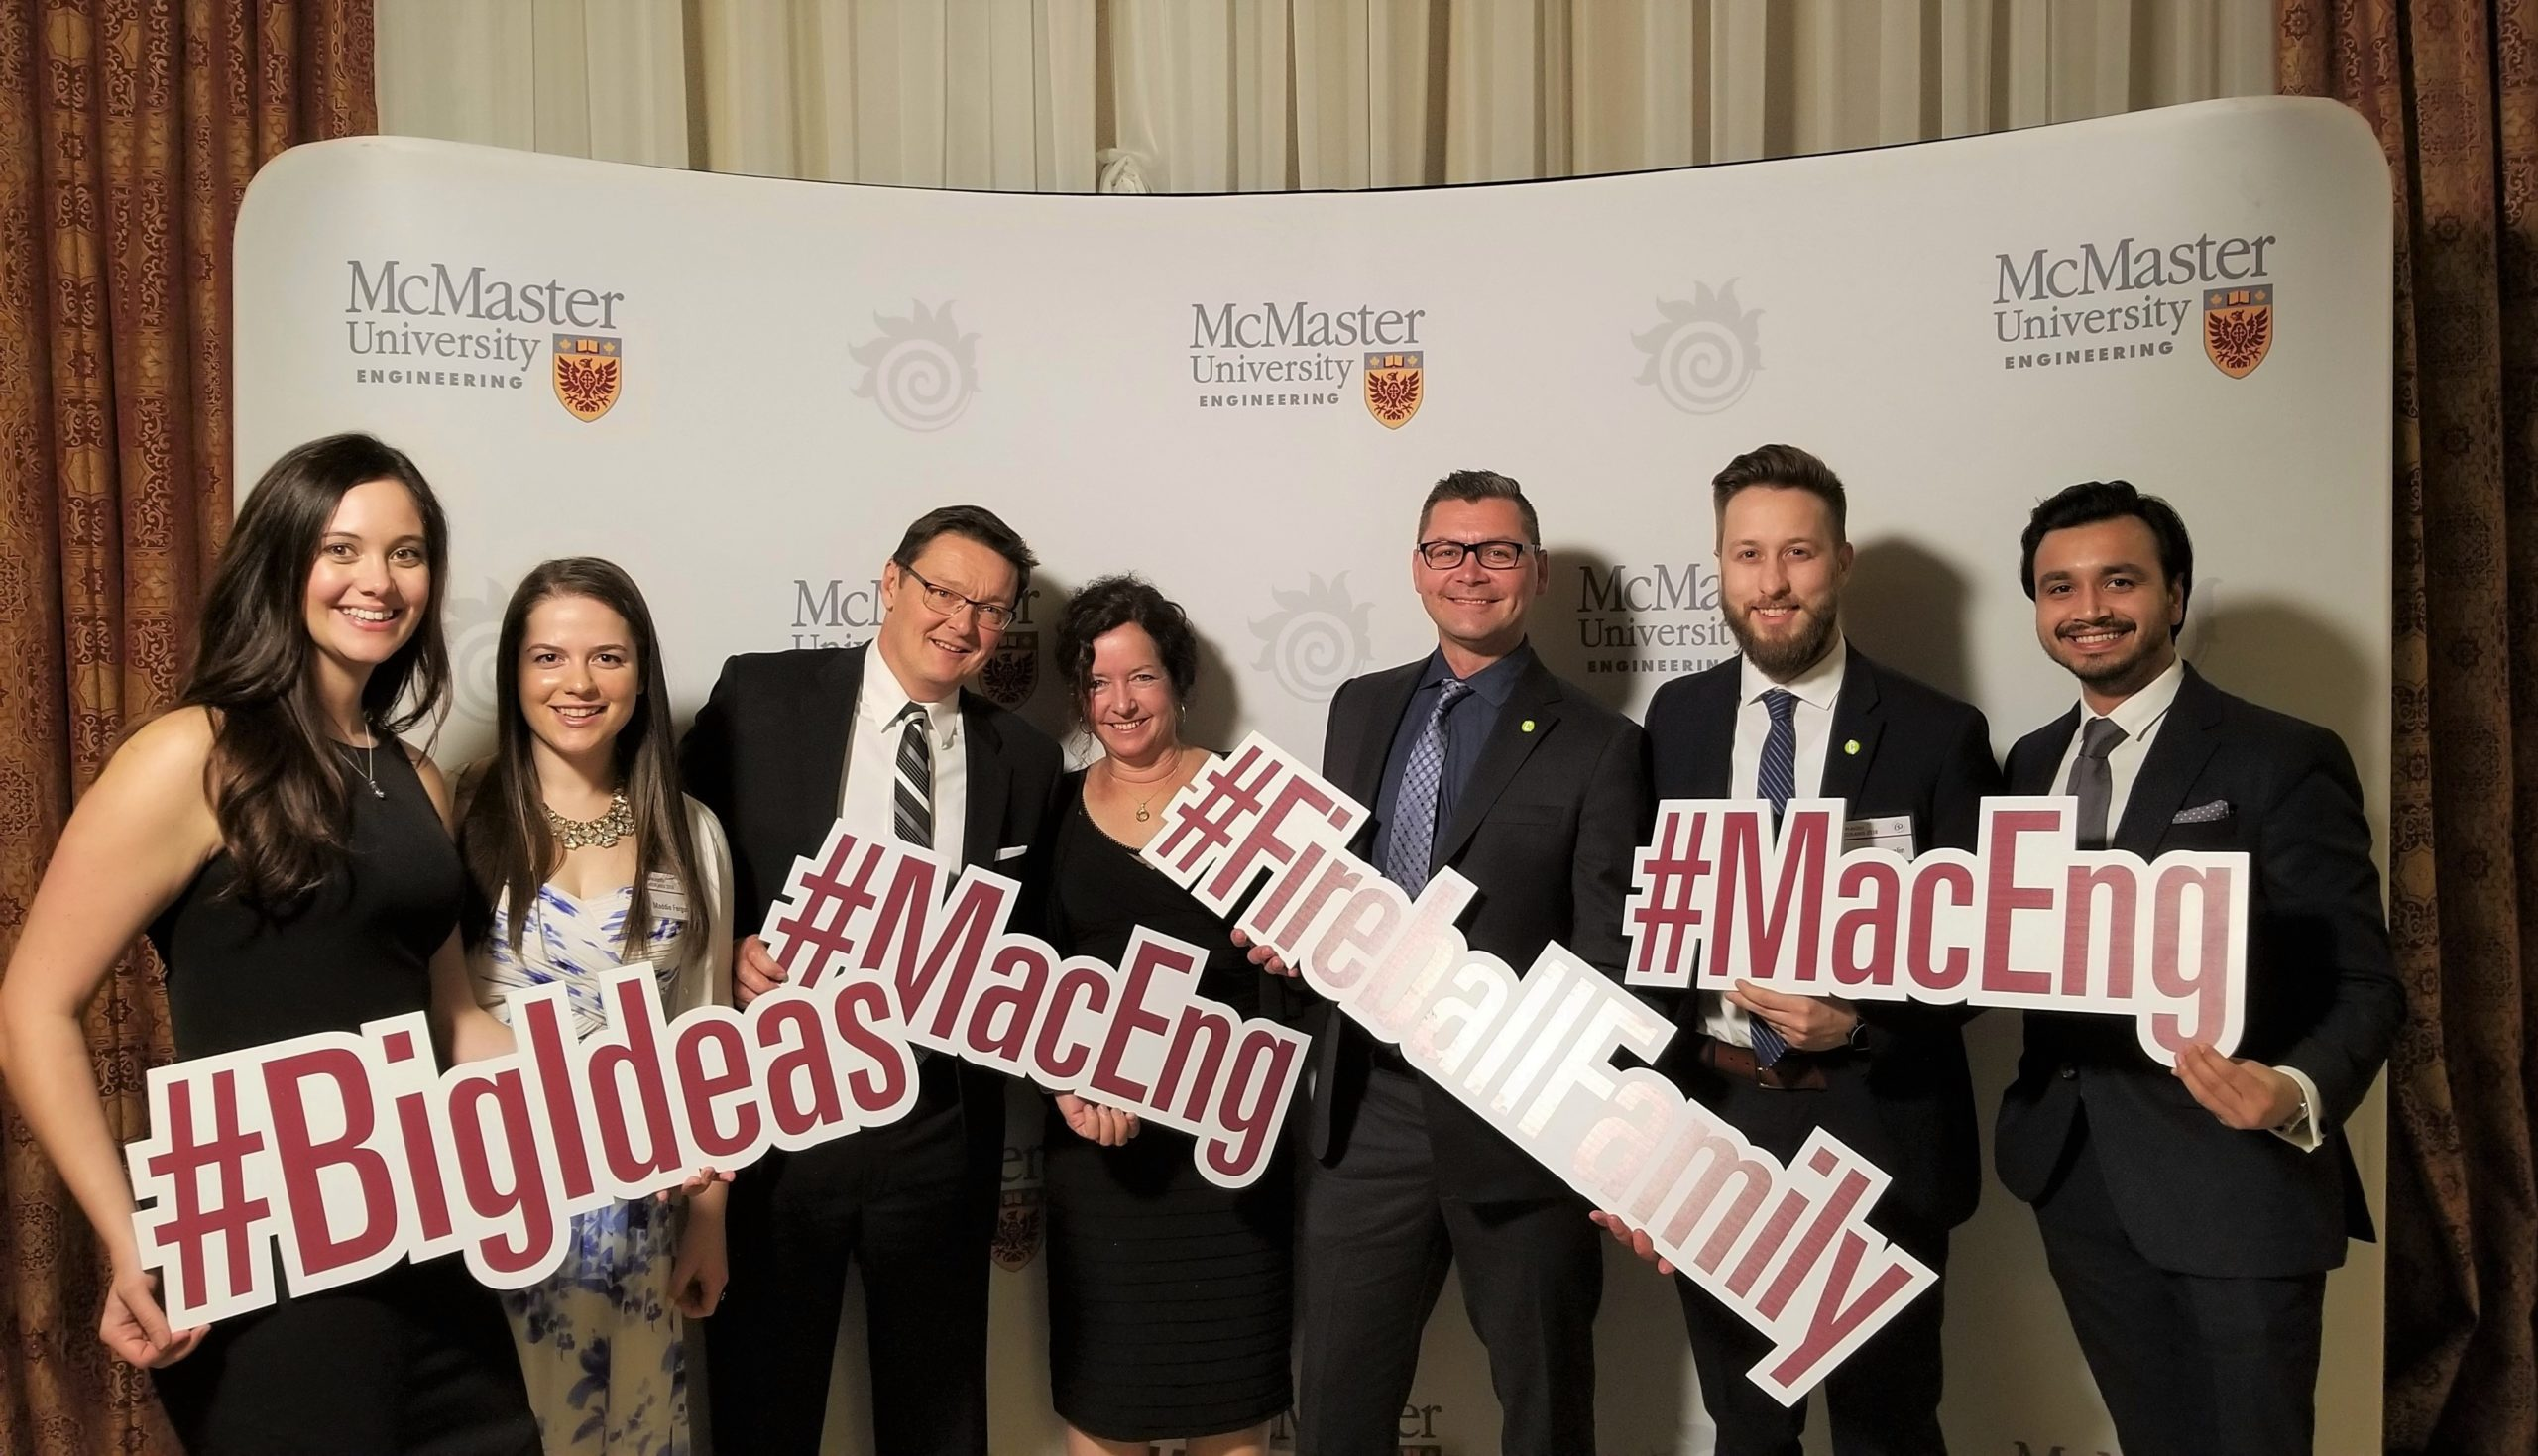 Photo of Crozier staff at McMaster event., Madeleine Fergson, P.Eng., Chris Crozier, P.Eng. (Founder and President), Lisa Crozier, Nick Mocan, M.Sc. (President), P.Eng., Stephen Hamelin, P.Eng., Ashish Shukla, P.Eng.